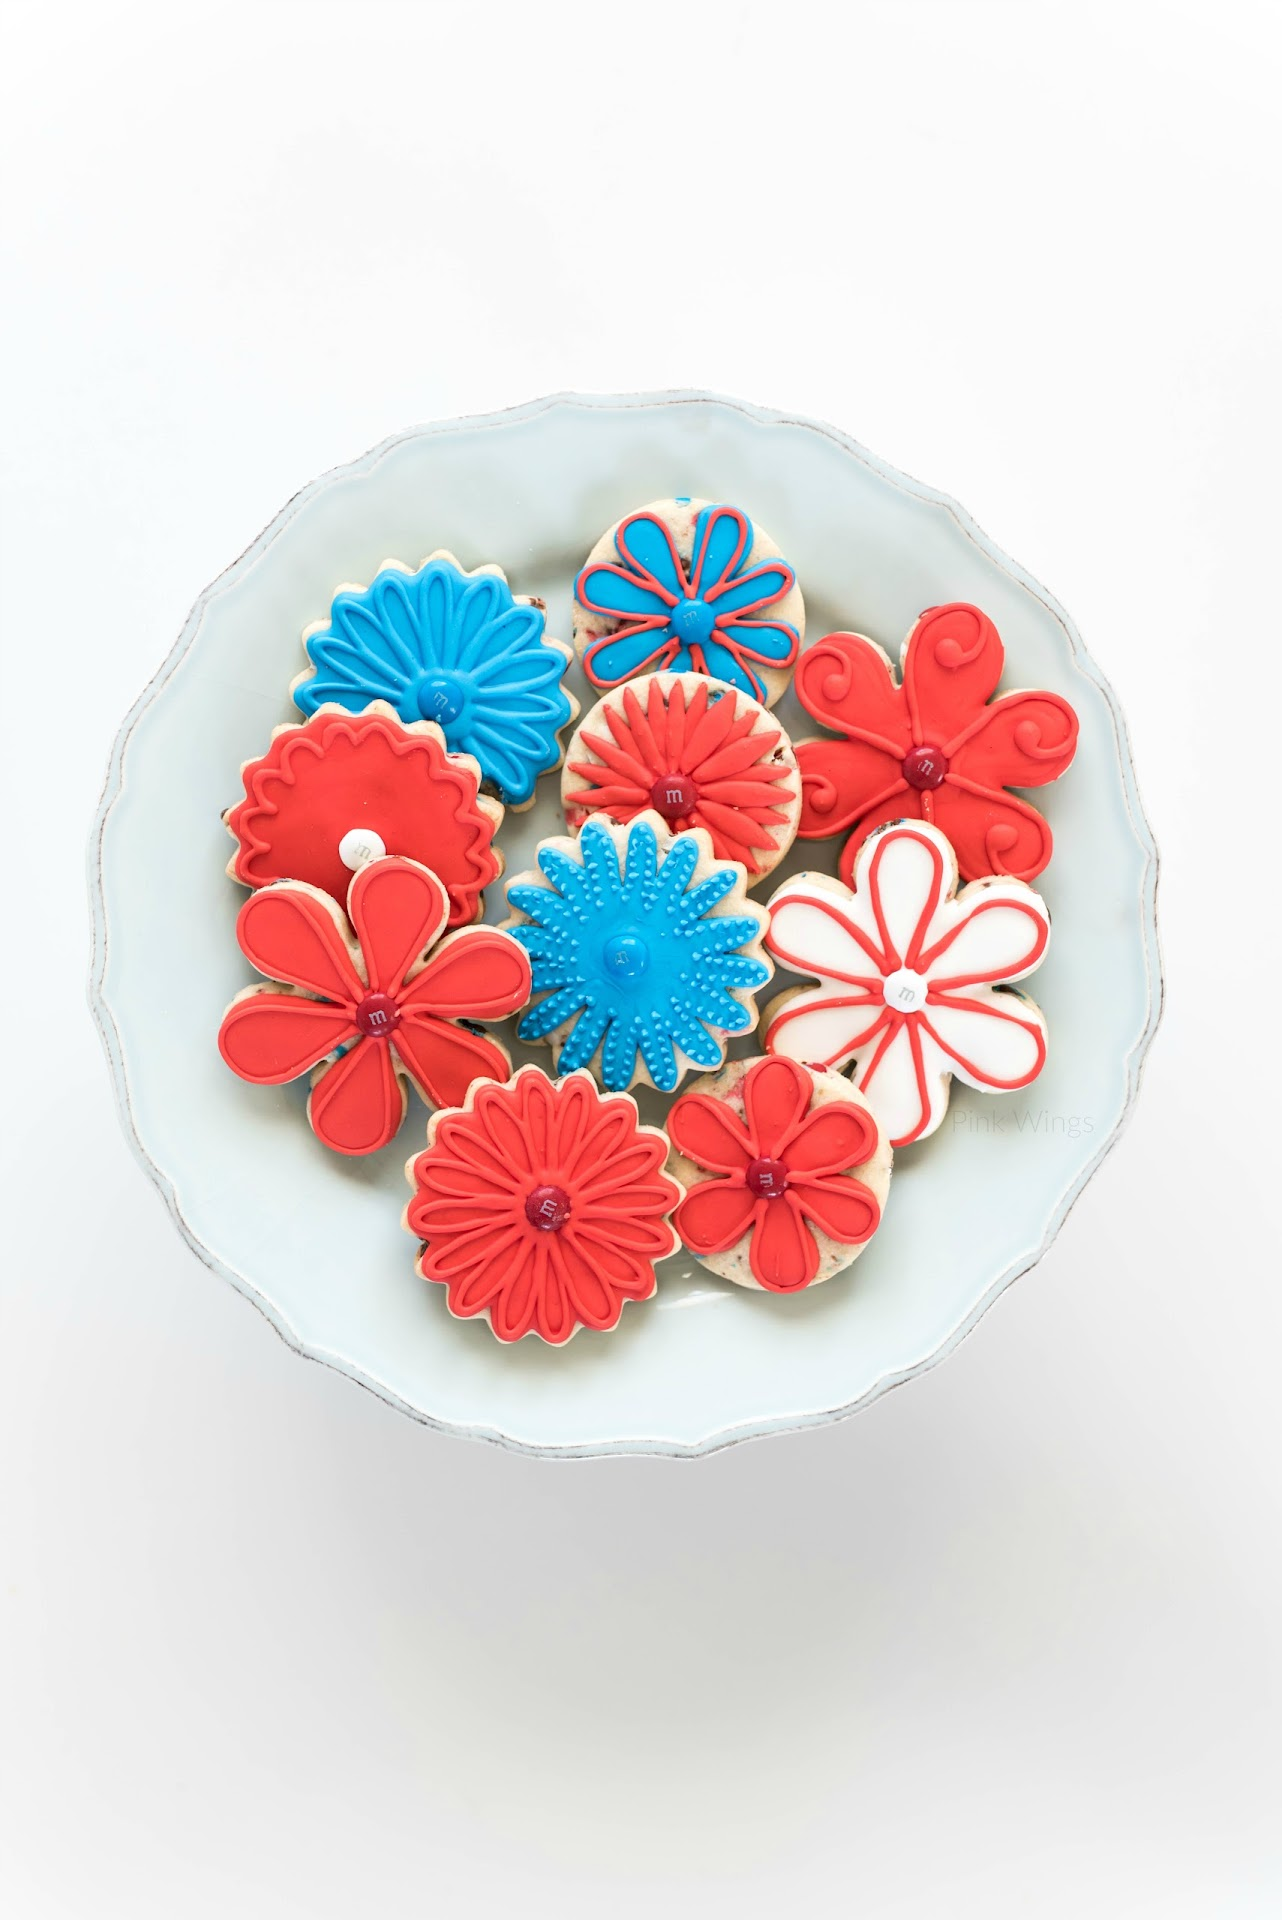 flower sugar cookies, best royal icing recipe, how to decorate sugar cookies, what pastry tips to use for royal icing, tips for decorating sugar cookies, patriotic recipes, recipe ideas for the 4th of july, picnic, red white and blue dessert, food art